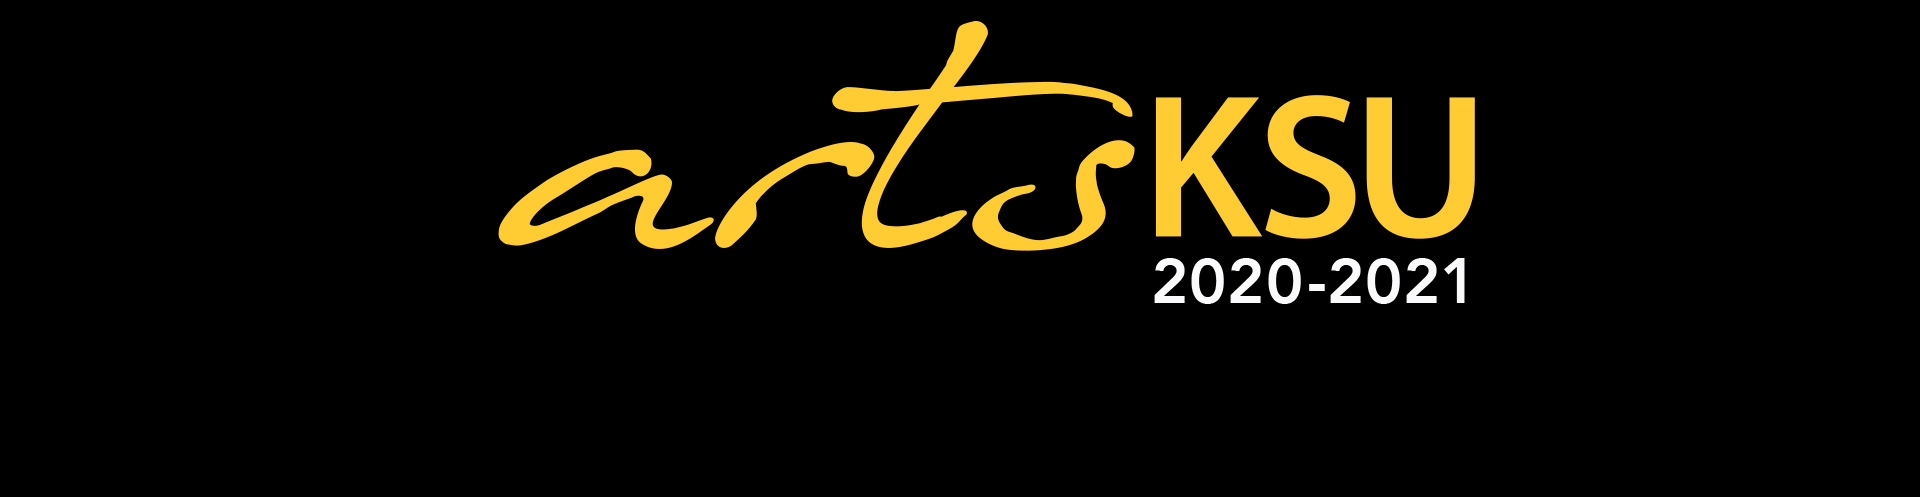 ArtsKSU 2020-2021 in black and white font over a gold background.